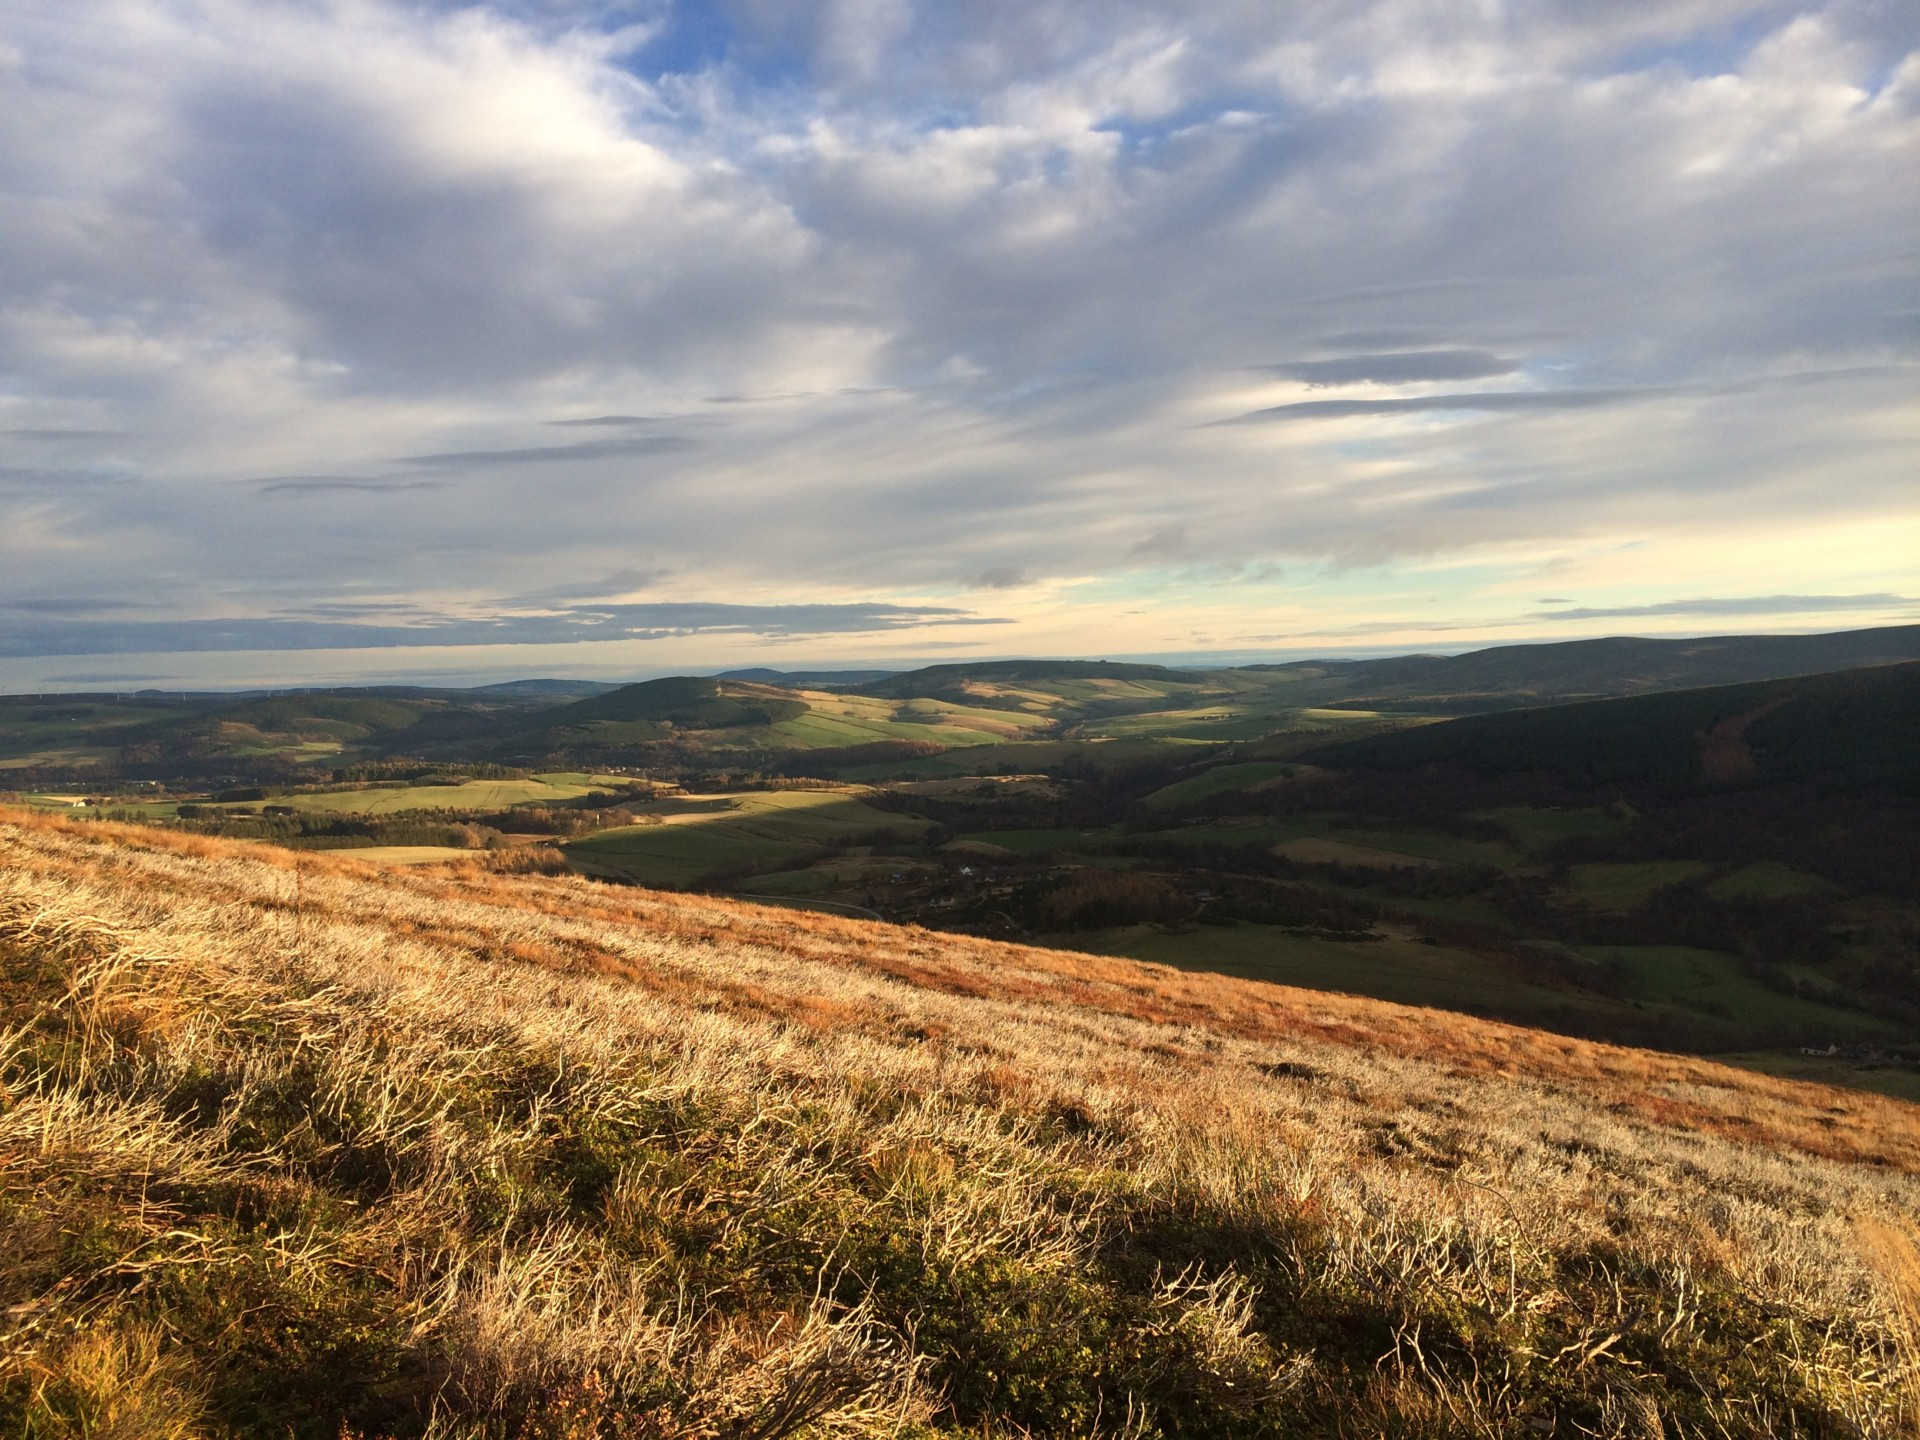 Glenrinnes wide open countryside - Speyside Cottages - self catering holidays homes